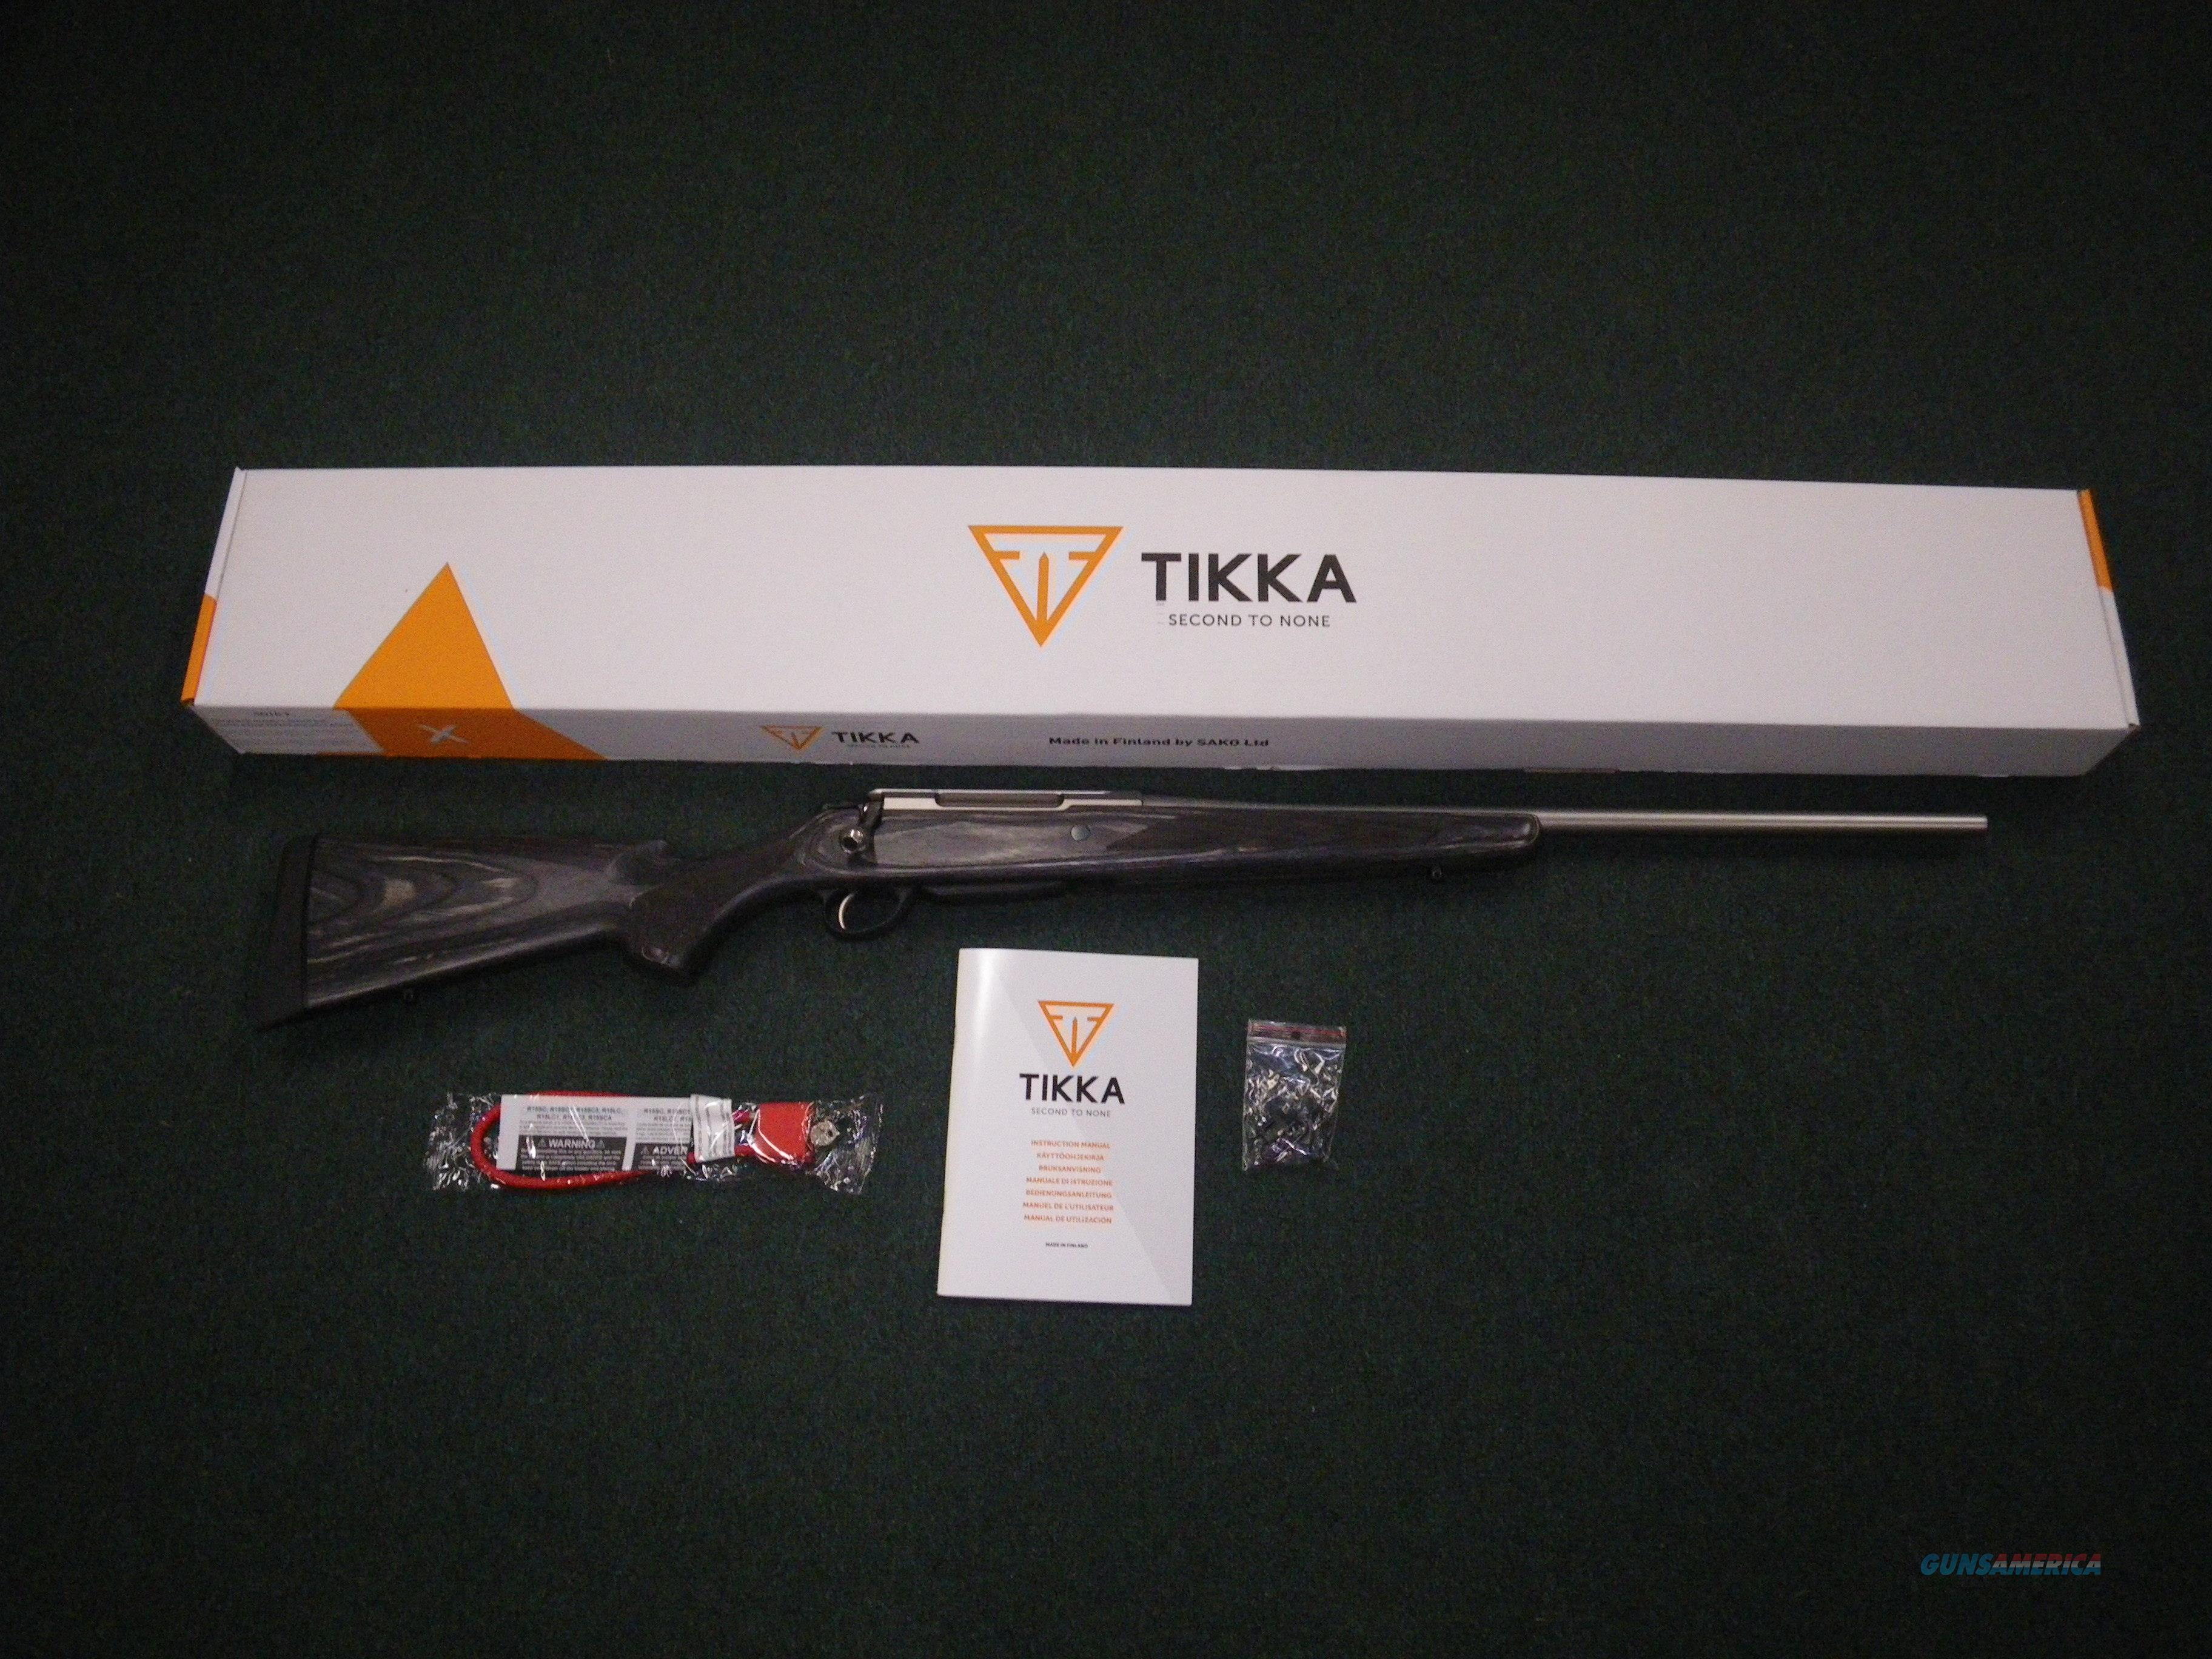 "Tikka T3x Laminated Stainless 30-06 Spfld 22.4"" NEW #JRTXG320  Guns > Rifles > Tikka Rifles > T3"